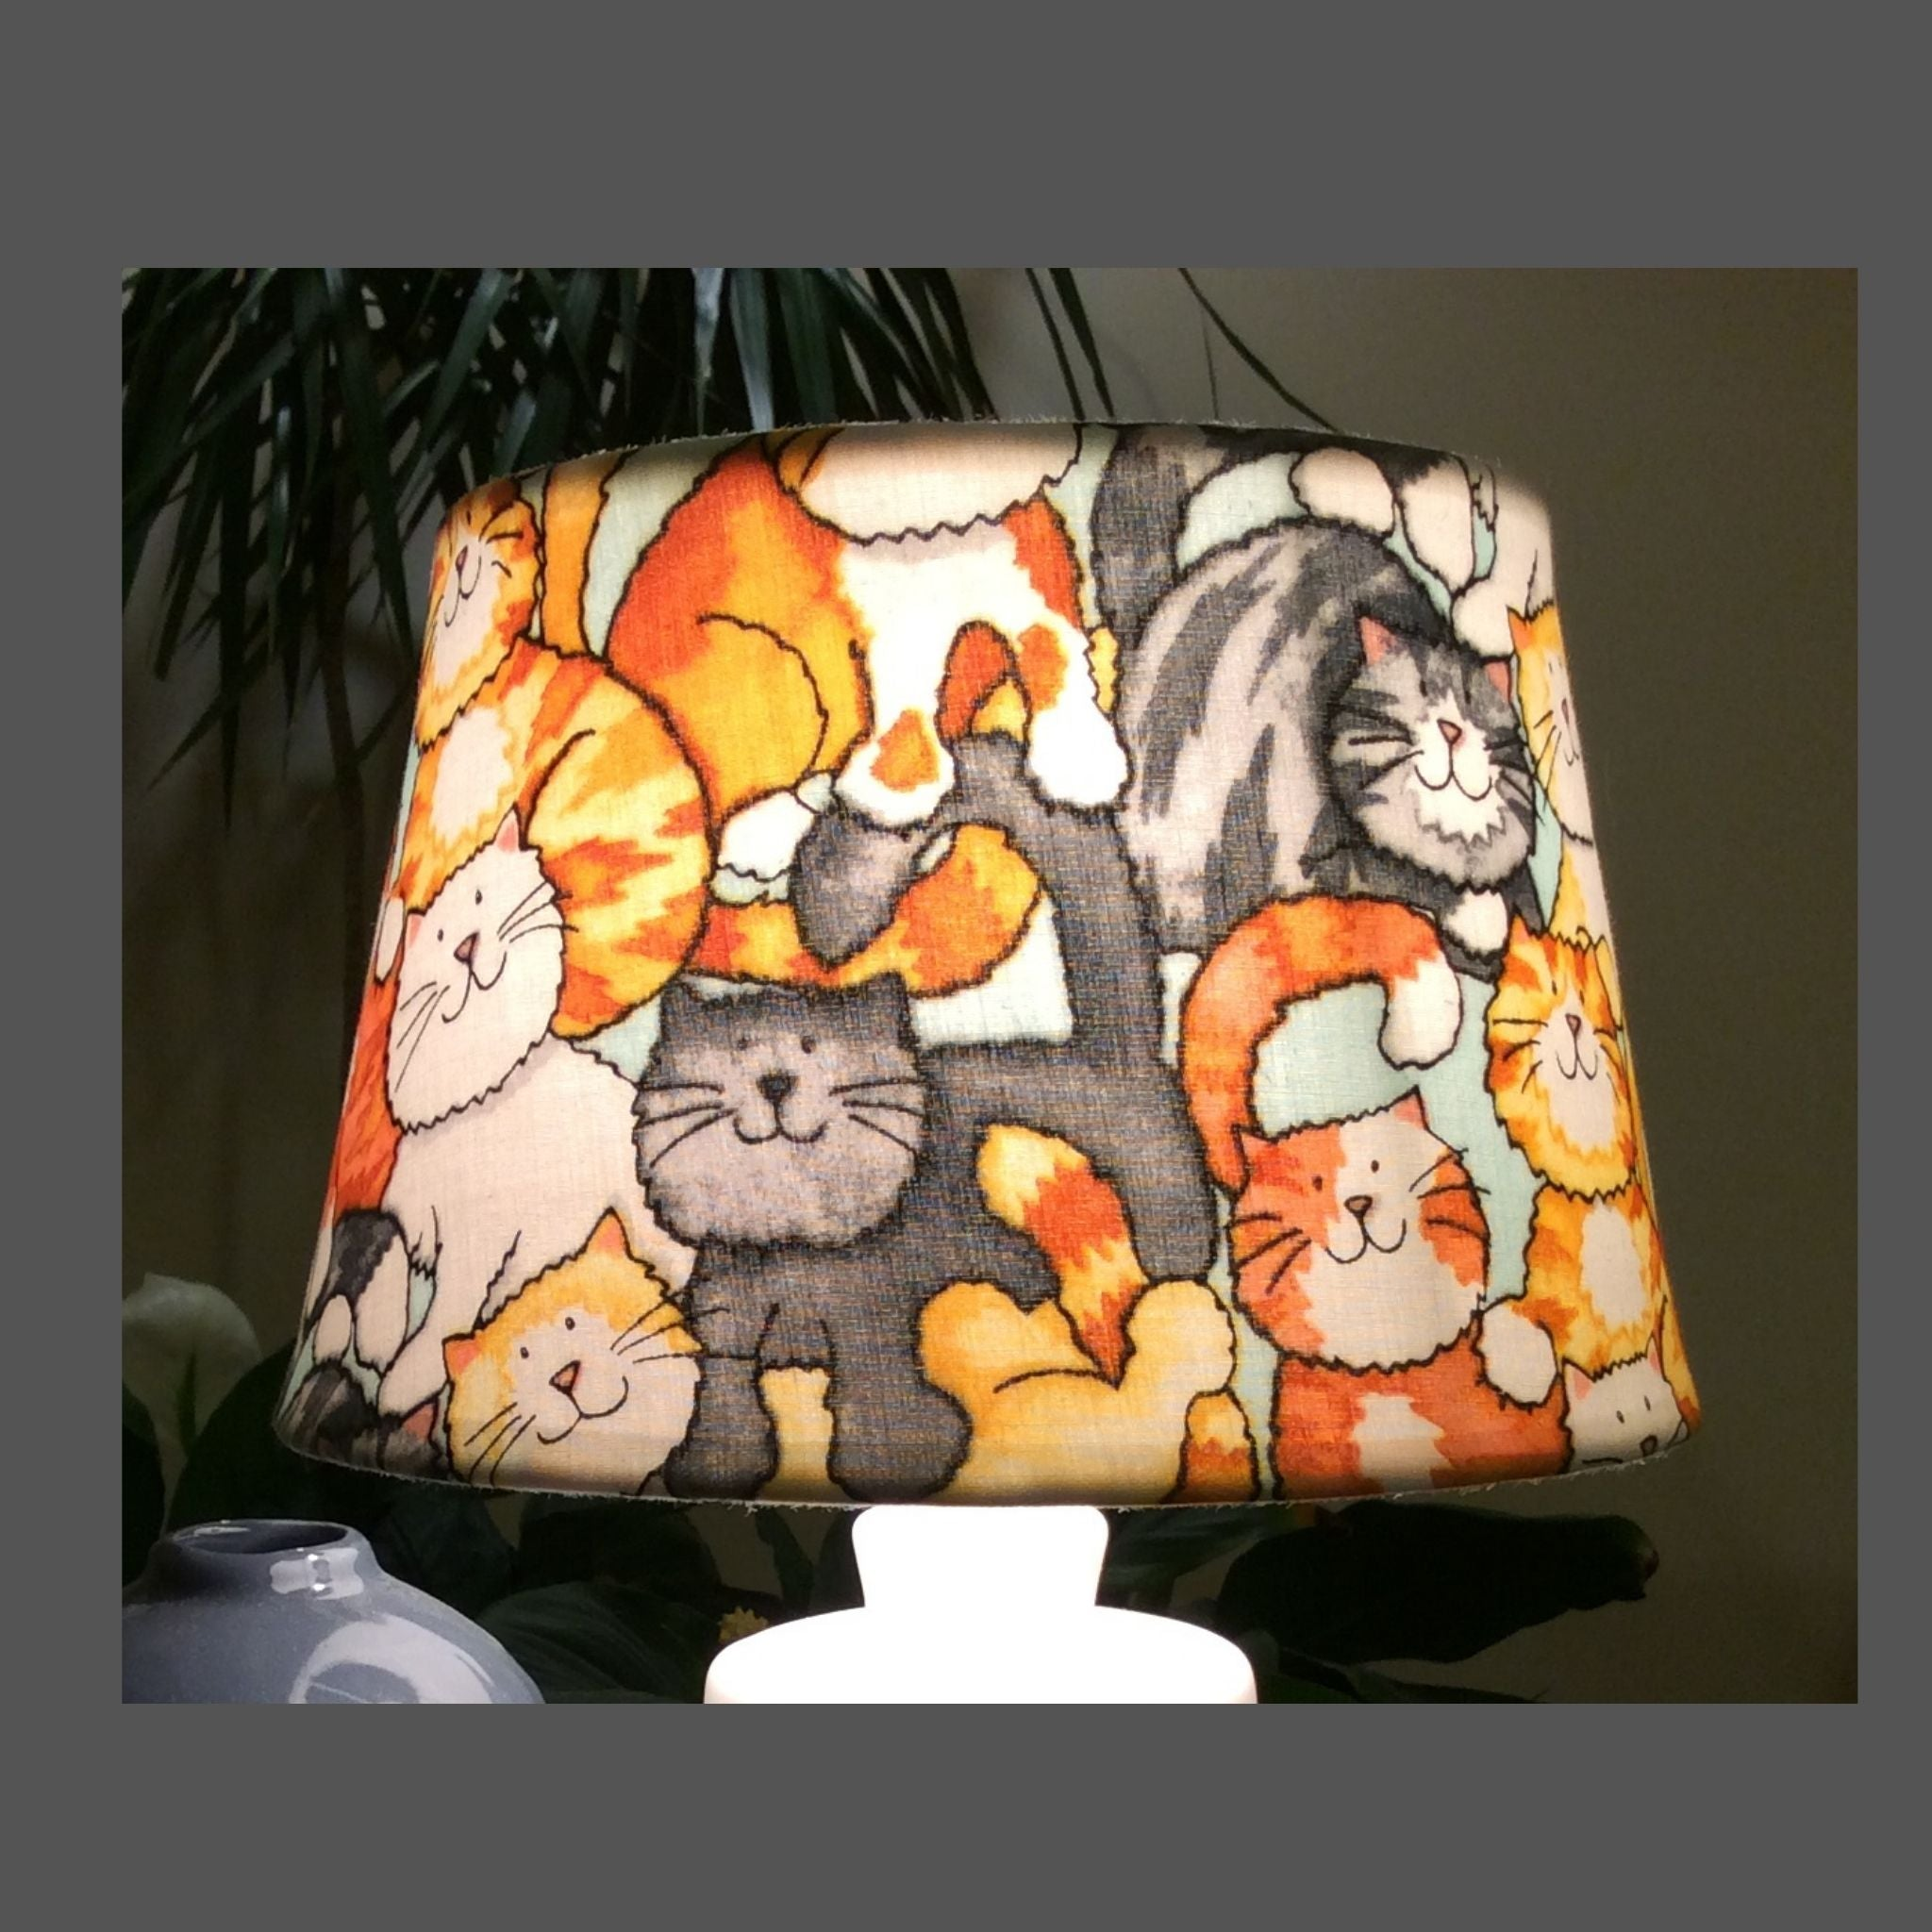 A lotta cats lampshade